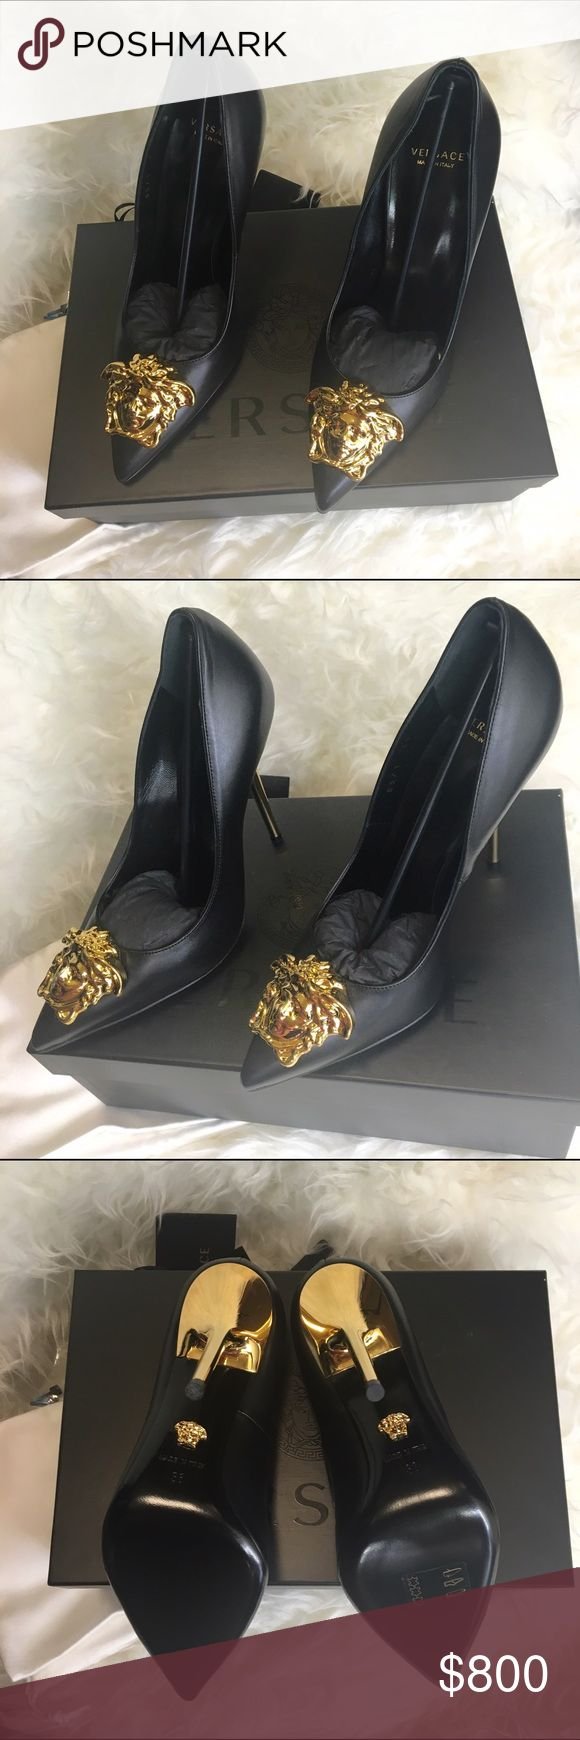 Versace Palazzo Pumps Brand New!!!  Authentic Versace Pumps!!! Never been worn. Reason for selling is I hardly wear heels. Includes: Original Versace Bag, Original Box, Original Tags, Xtra Heel Replc and original Receipt. EXACTLY HOW IT WAS SOLD! MSRP $895 plus Tax. Almost $1,000 Versace Shoes Heels